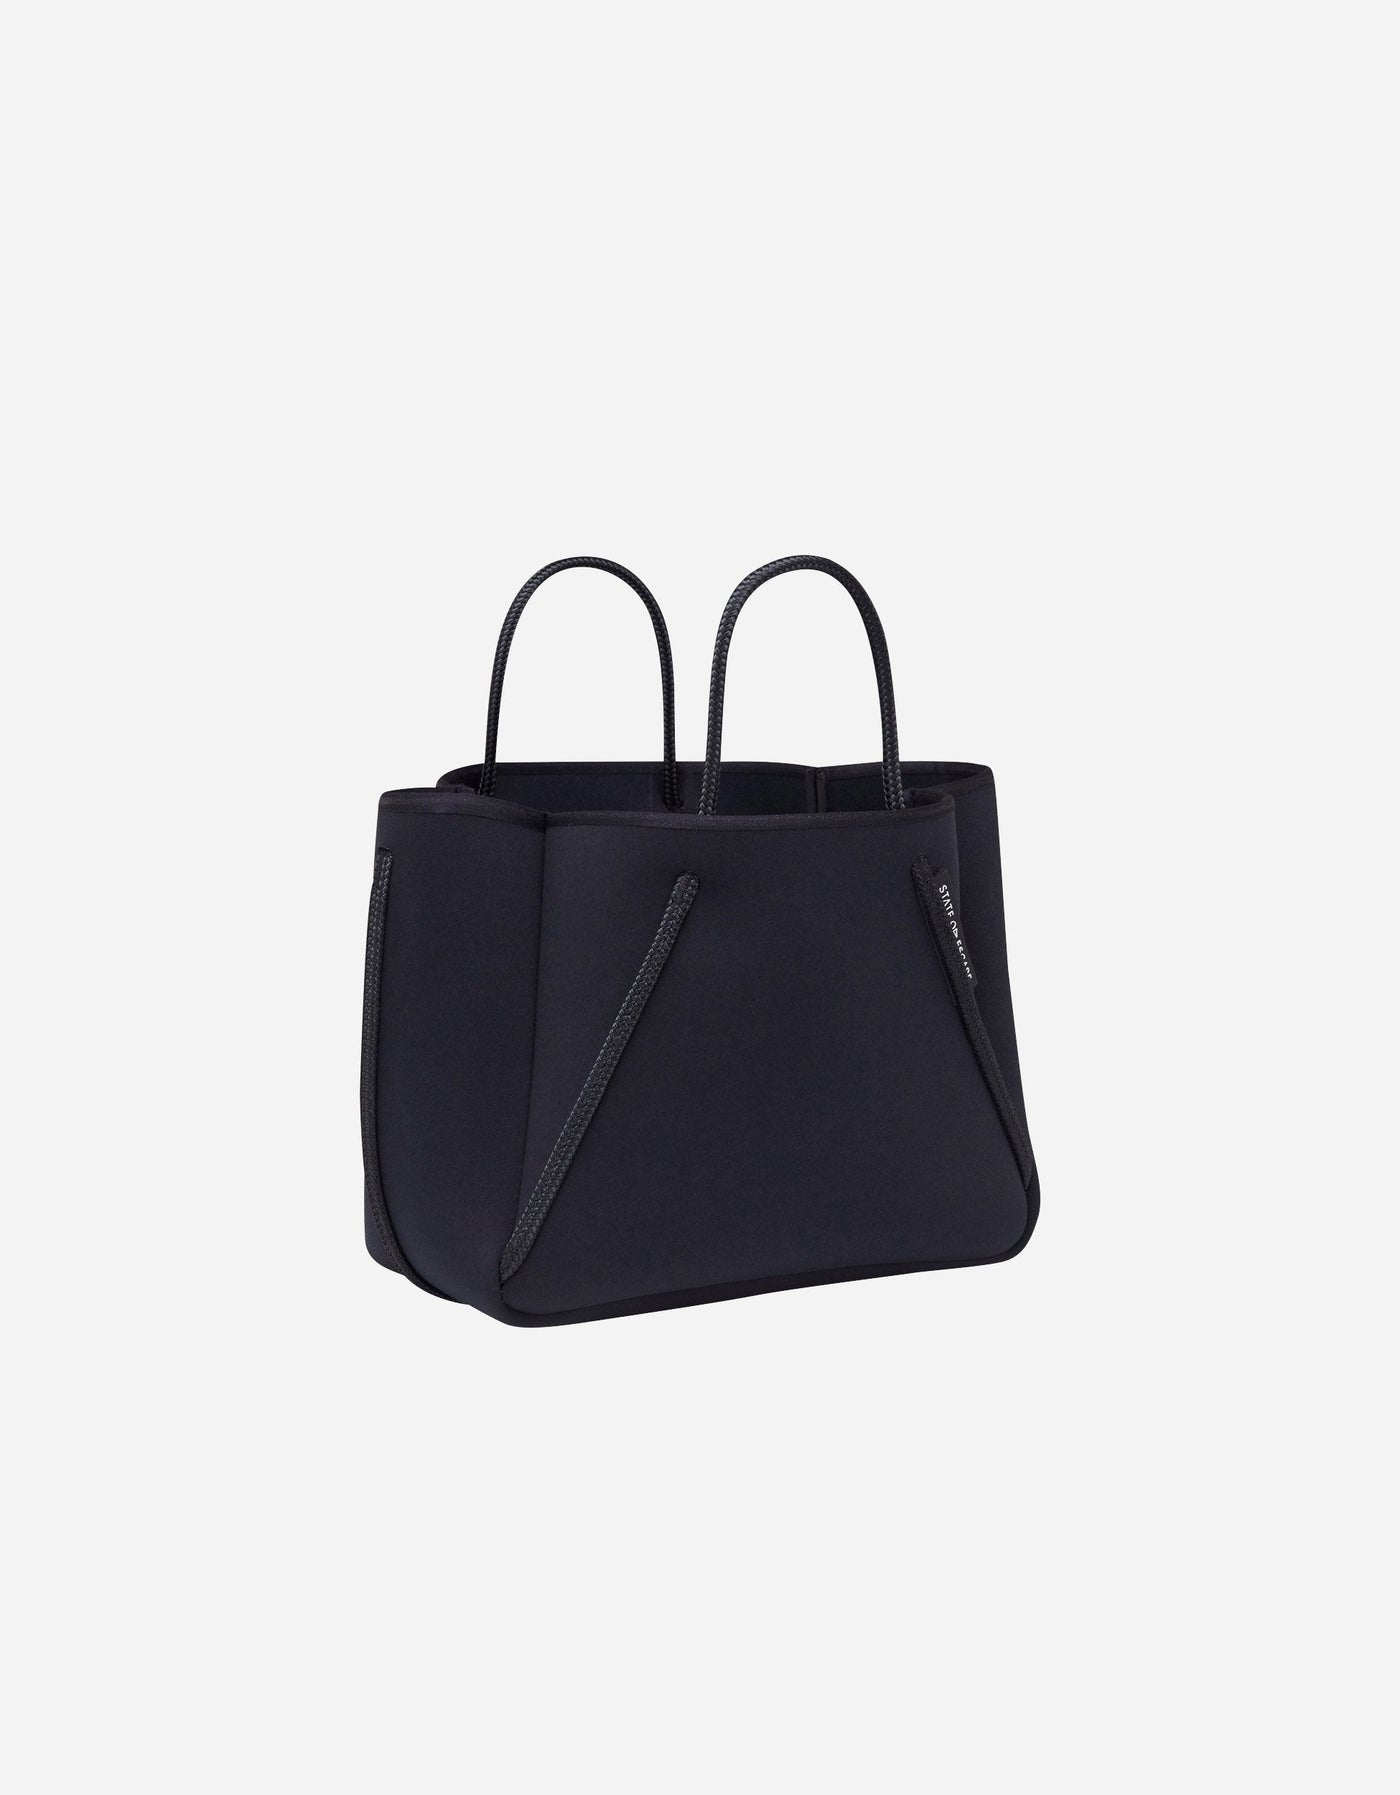 Petite guise neoprene tote bag in black out